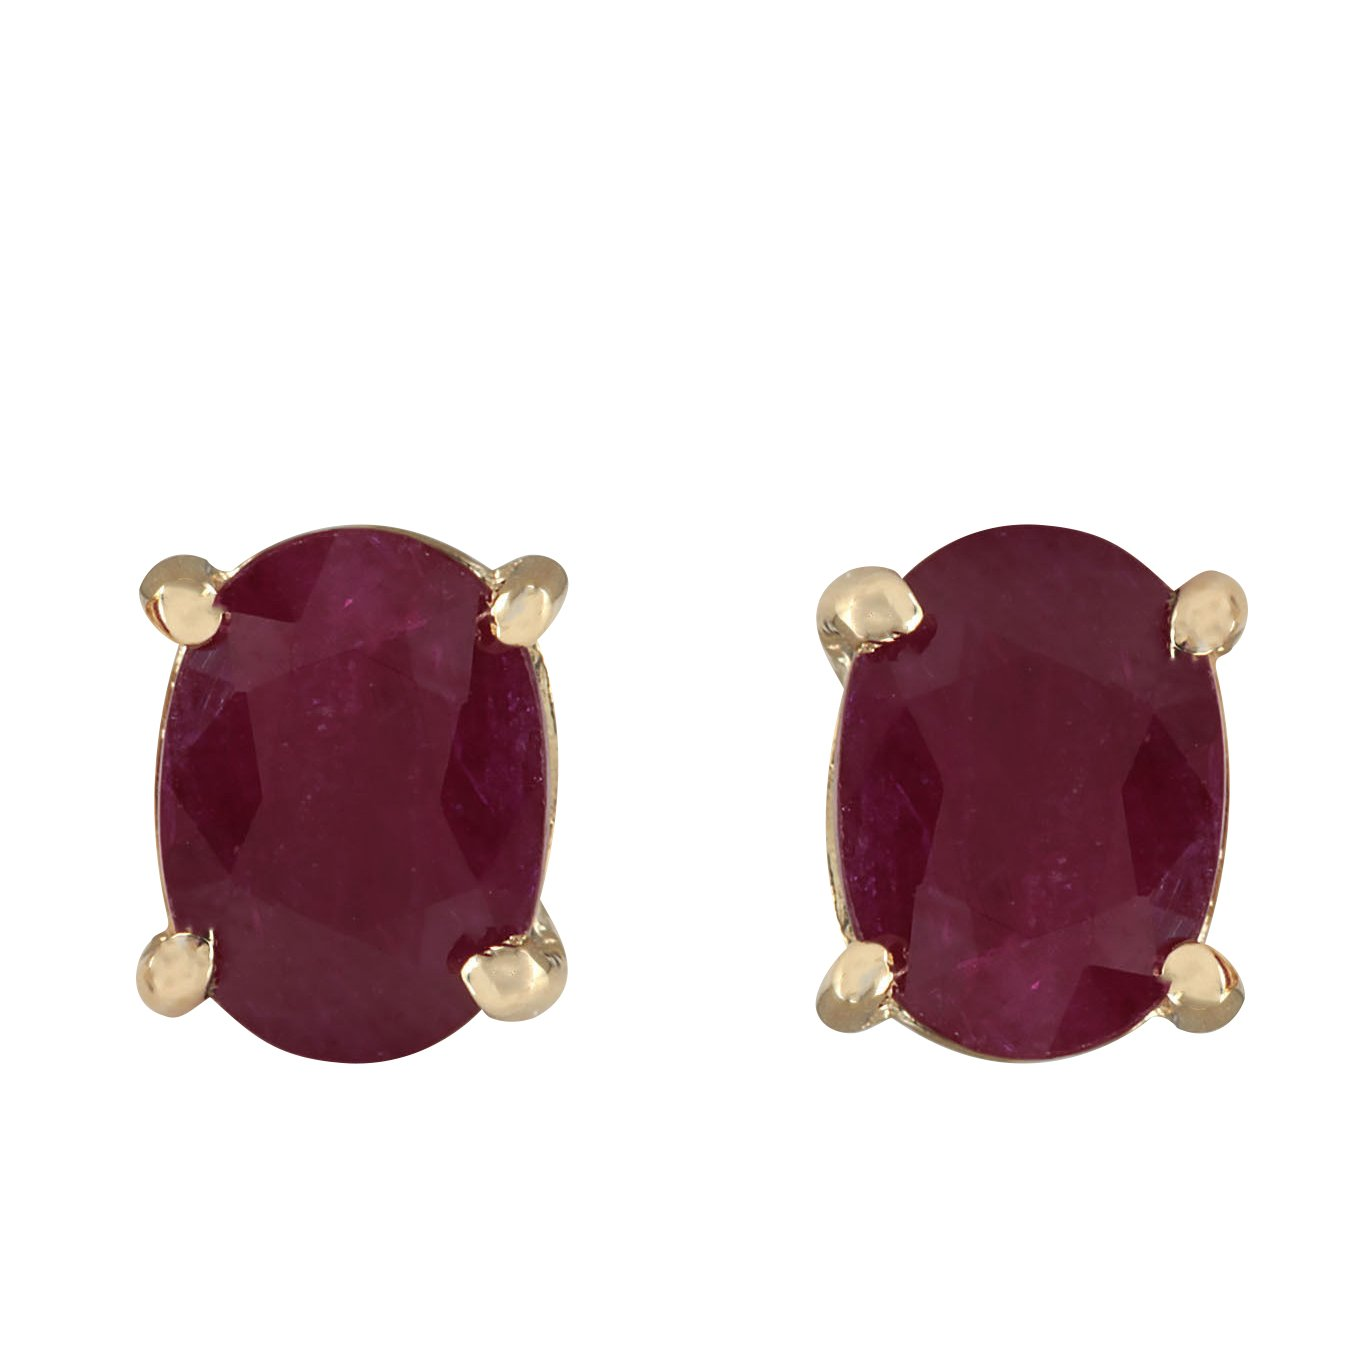 1.8 Carat Natural Red Ruby 14K Yellow Gold Solitaire Stud Earrings for Women Exclusively Handcrafted in USA